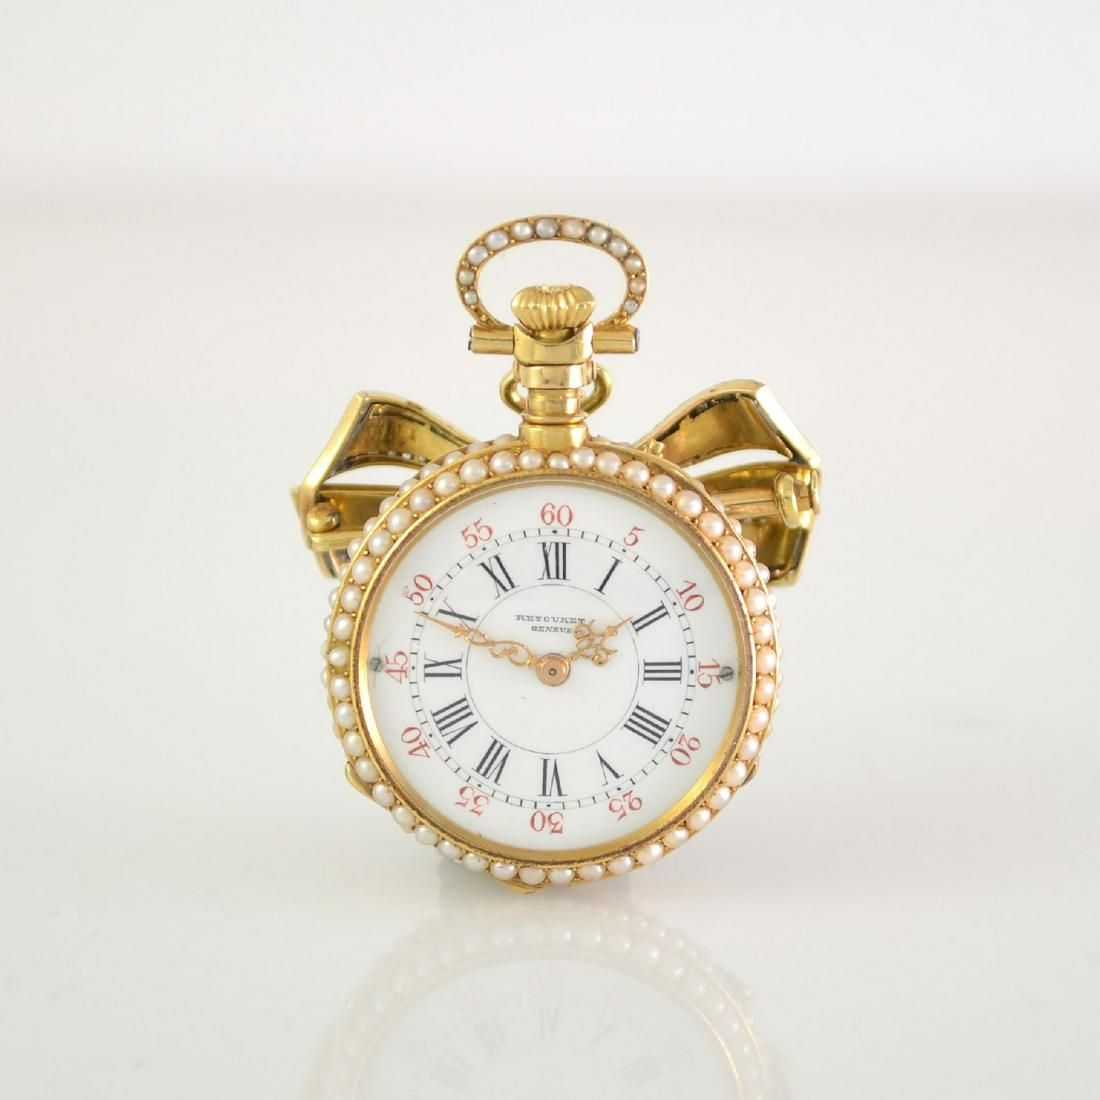 RETOURET Geneve fine 18k pink gold pocket watch